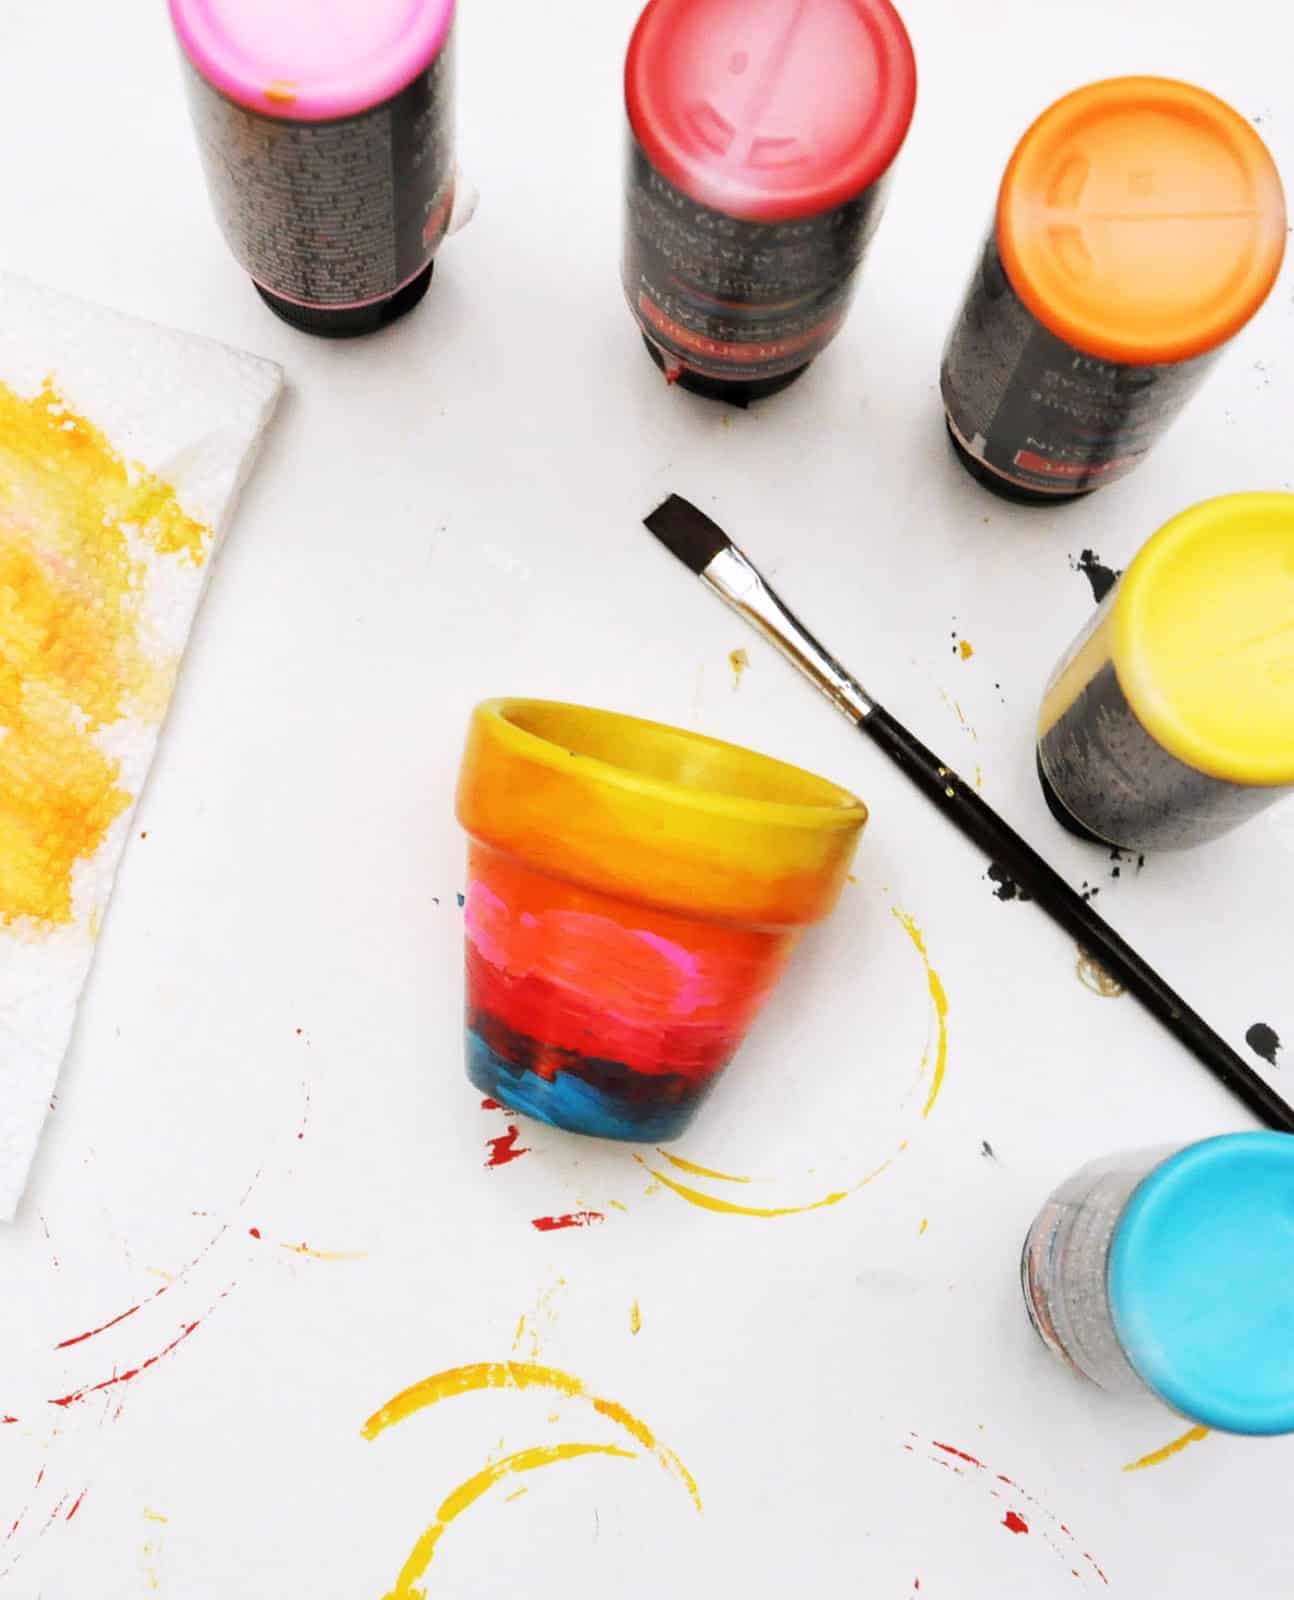 The bottom of four paint bottles and a painted pot with a paintbrush